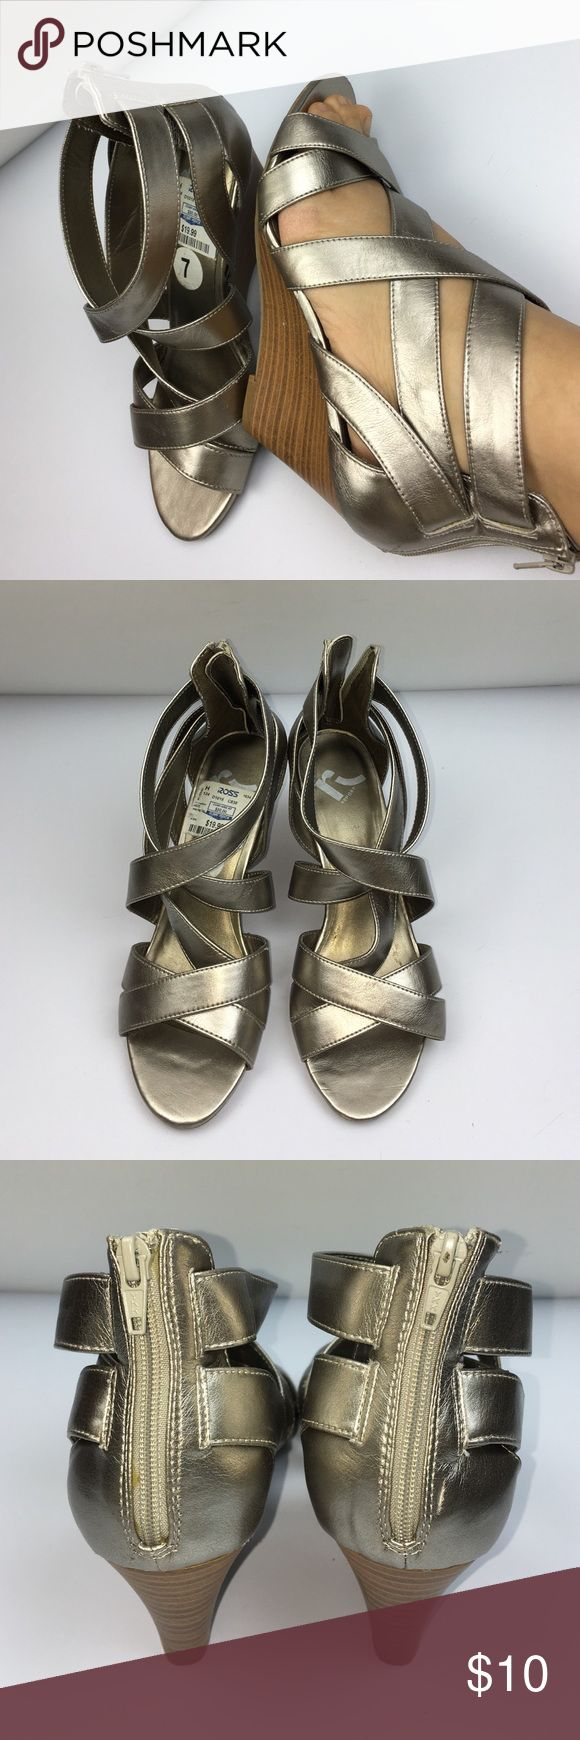 """Strapy metallic wedges. NWT Metallic opened toed, pewter colored, strapy wedges. Zips up the back. 3 inches tall and rubber bottoms. Never worn outside of the house. Only worn to try on. The brand in called, """"Report"""". Purchased from Ross stores and original retail price is $50.00. I paid $20.00 for them. Kept in a box for years. Need to clean my closet out. They need a good home, one who will appreciate them. They are a size 7 but are not true to size. They are more like a 7 & 1/2. Report…"""